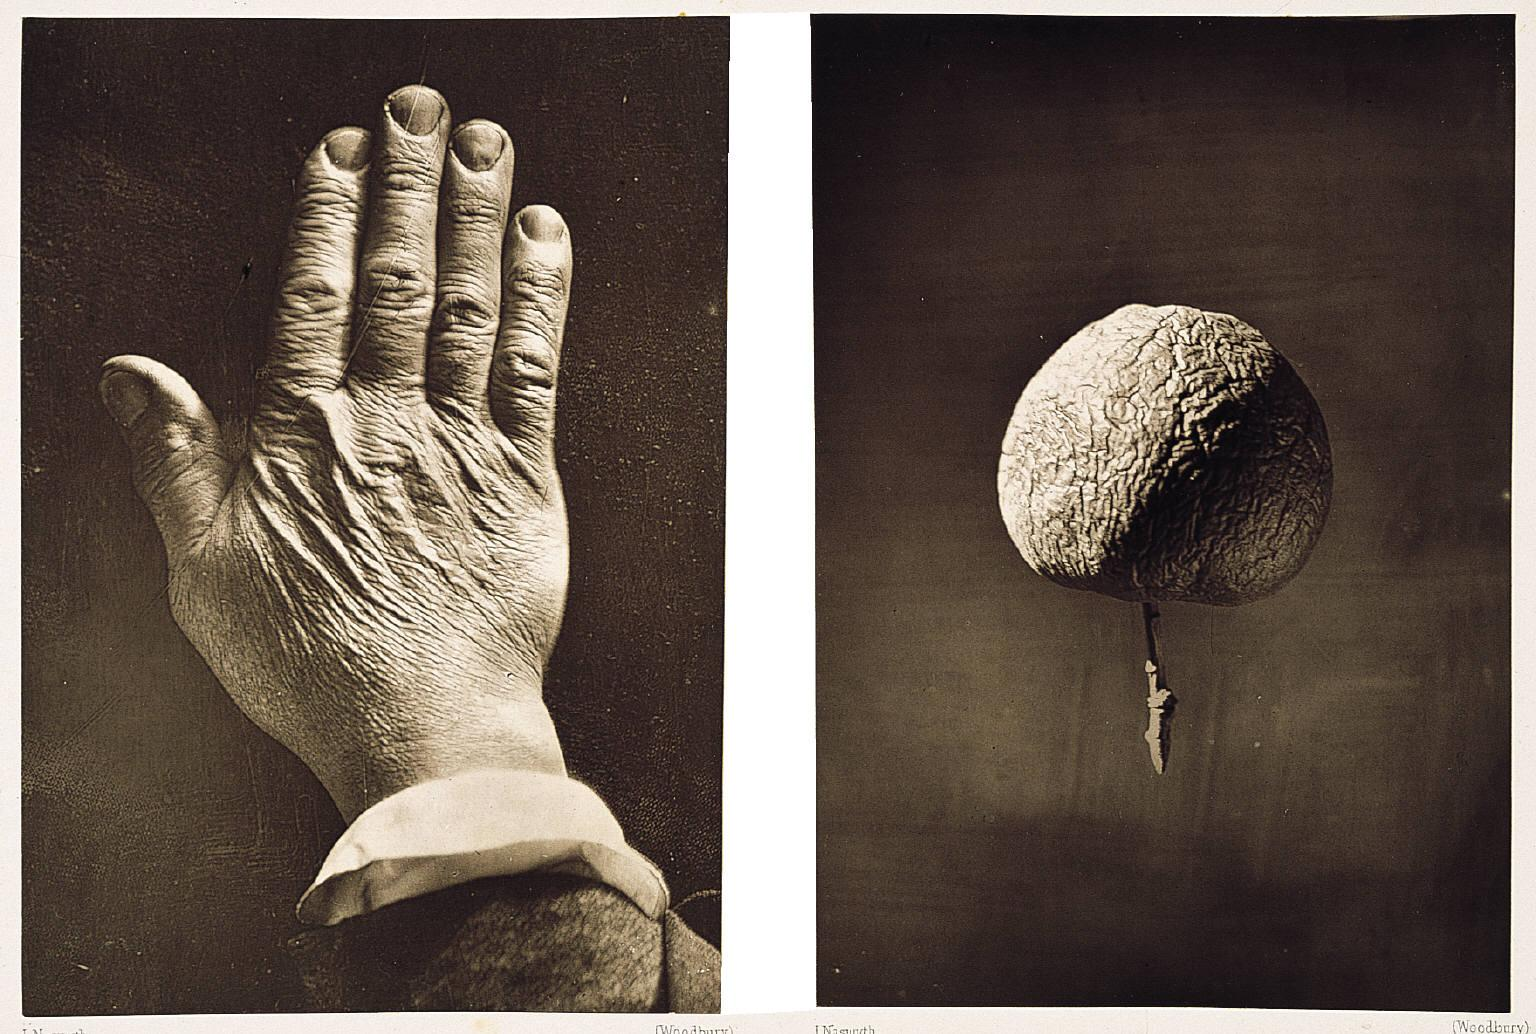 James Nasmyth,  The Moon: Considered as a Planet, a World, and a Satellite , 1885. Plate II: Back of hand & wrinkled apple to illustrate the effect of certain mountain ranges resulting from shrinking of the interior